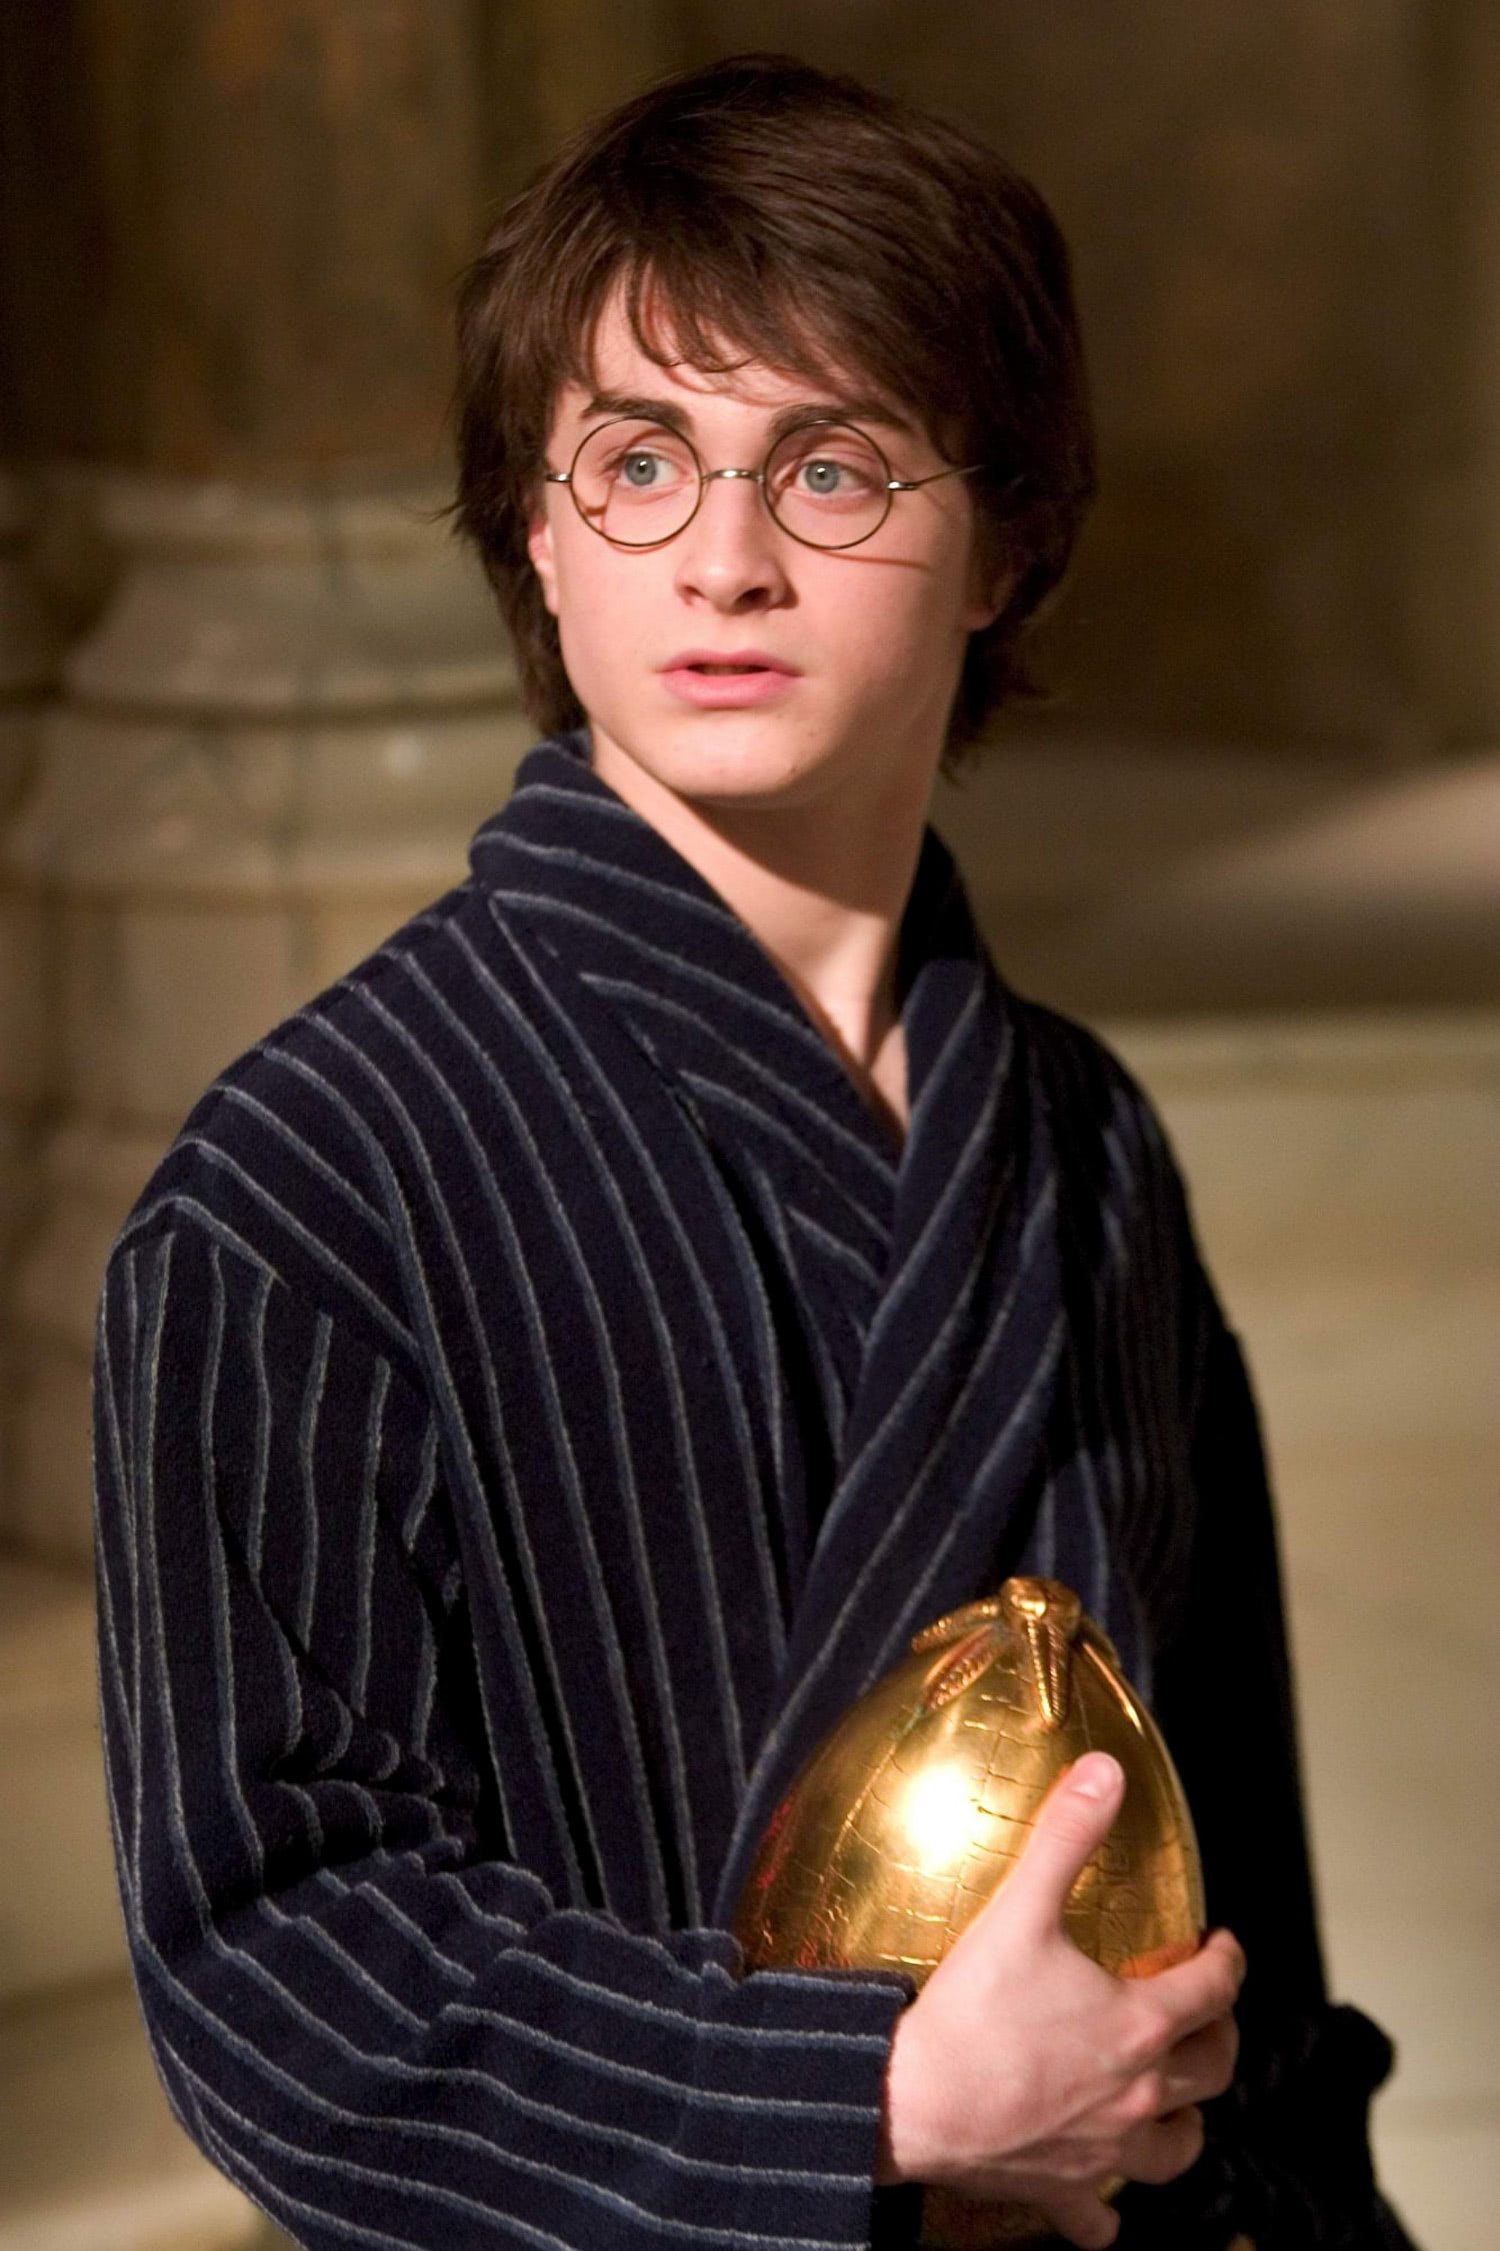 Harry with the golden egg